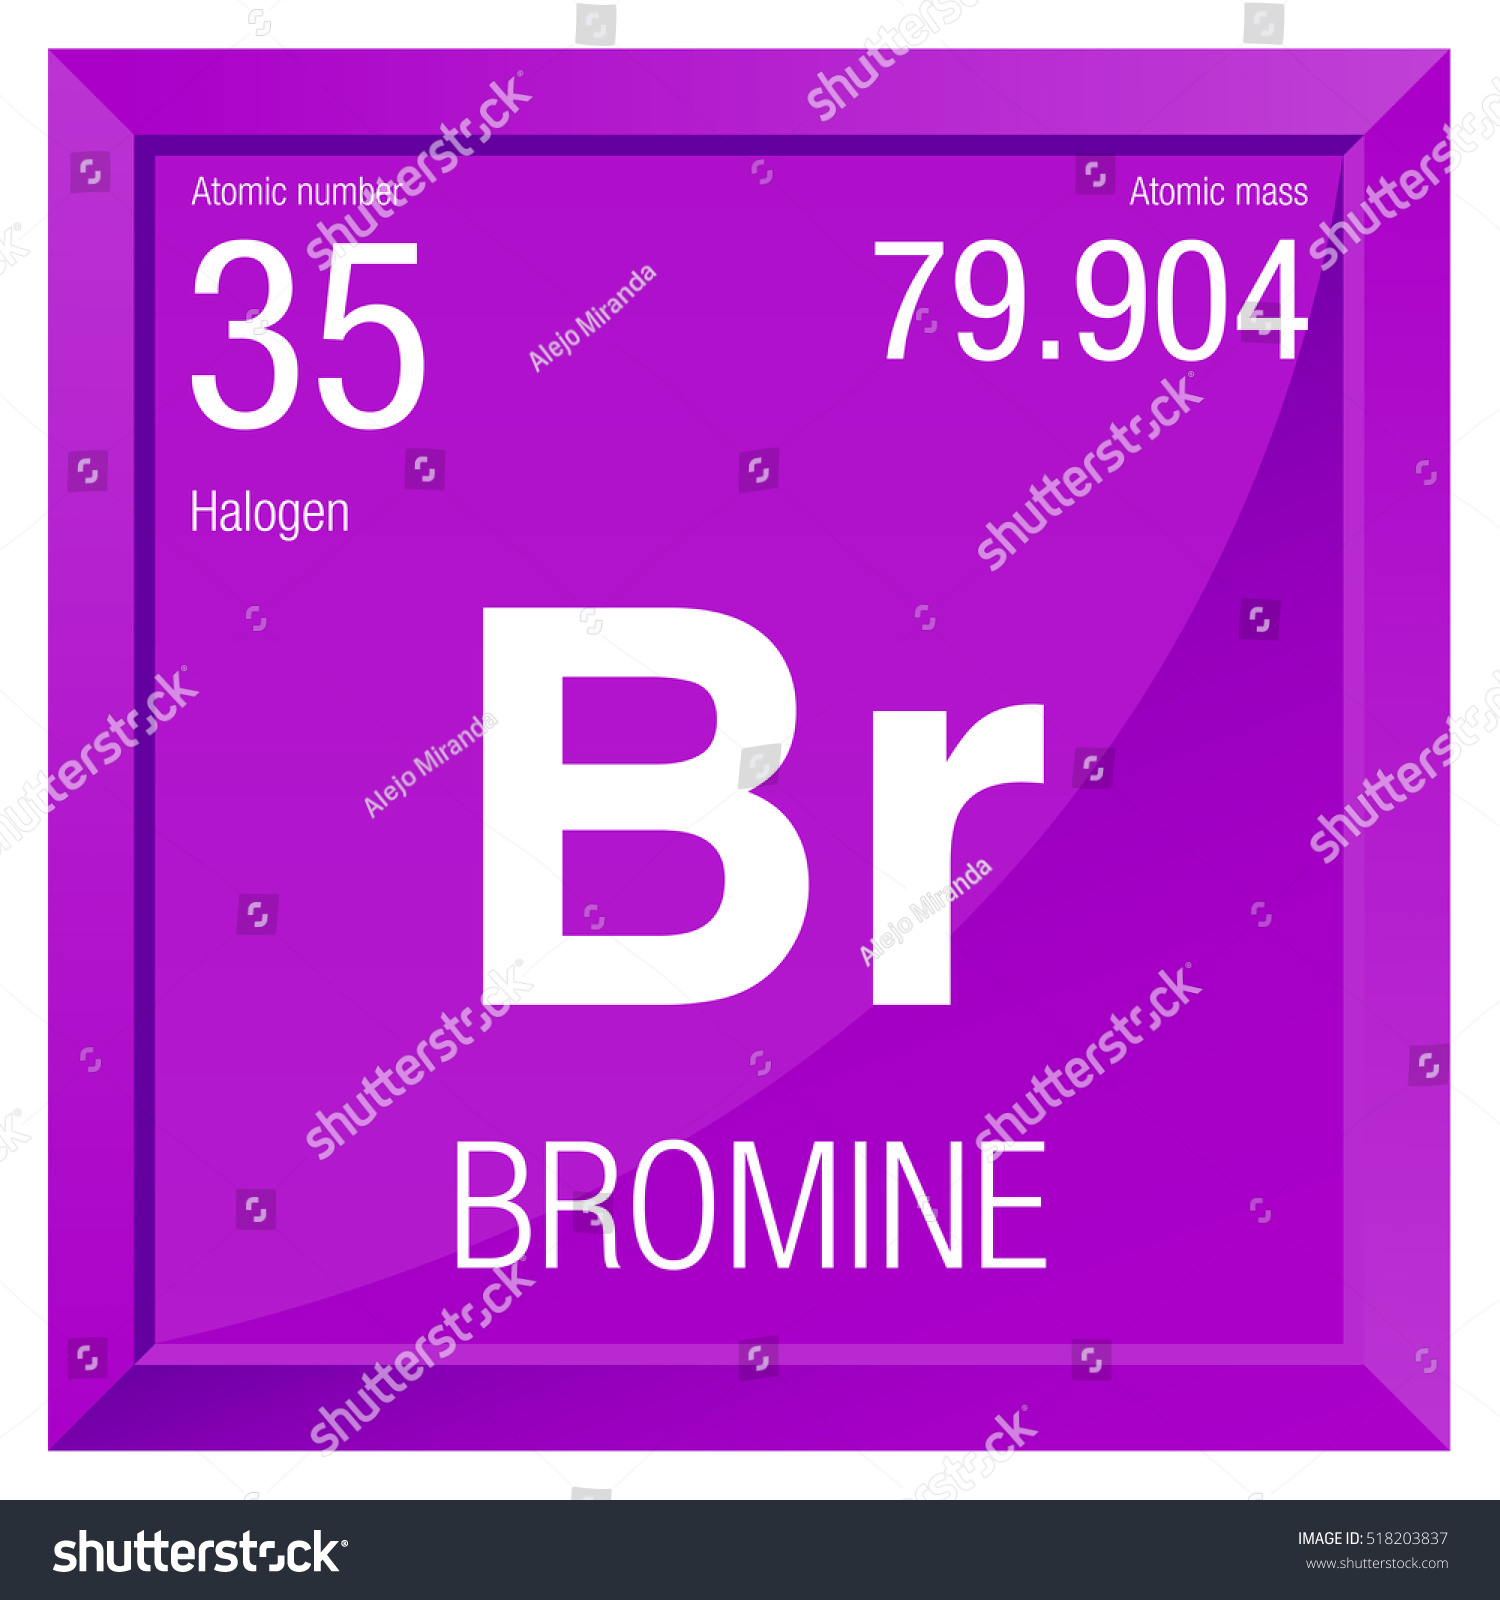 Bromine symbol element number 35 periodic stock vector 518203837 bromine symbol element number 35 of the periodic table of the elements chemistry gamestrikefo Gallery